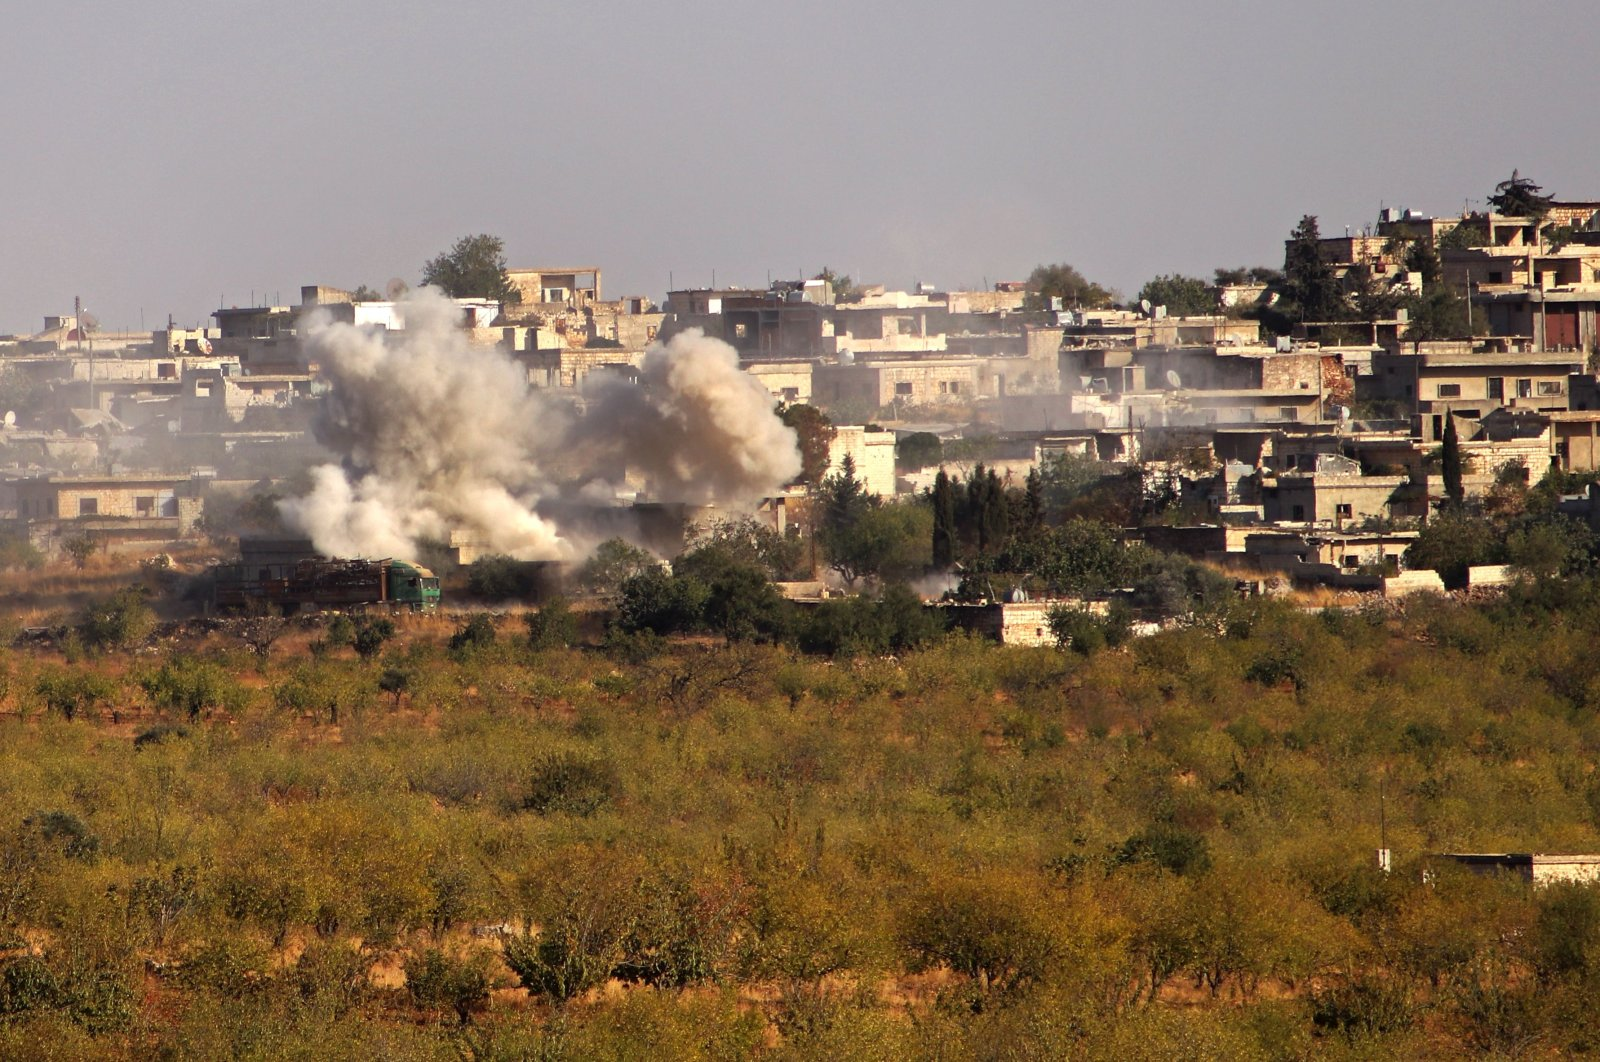 Smoke plumes rise from buildings in a village reportedly targeted with shells by Bashar Assad regime forces, Kansafra, southern Idlib province, northwestern Syria, Oct. 23, 2020. (AFP)